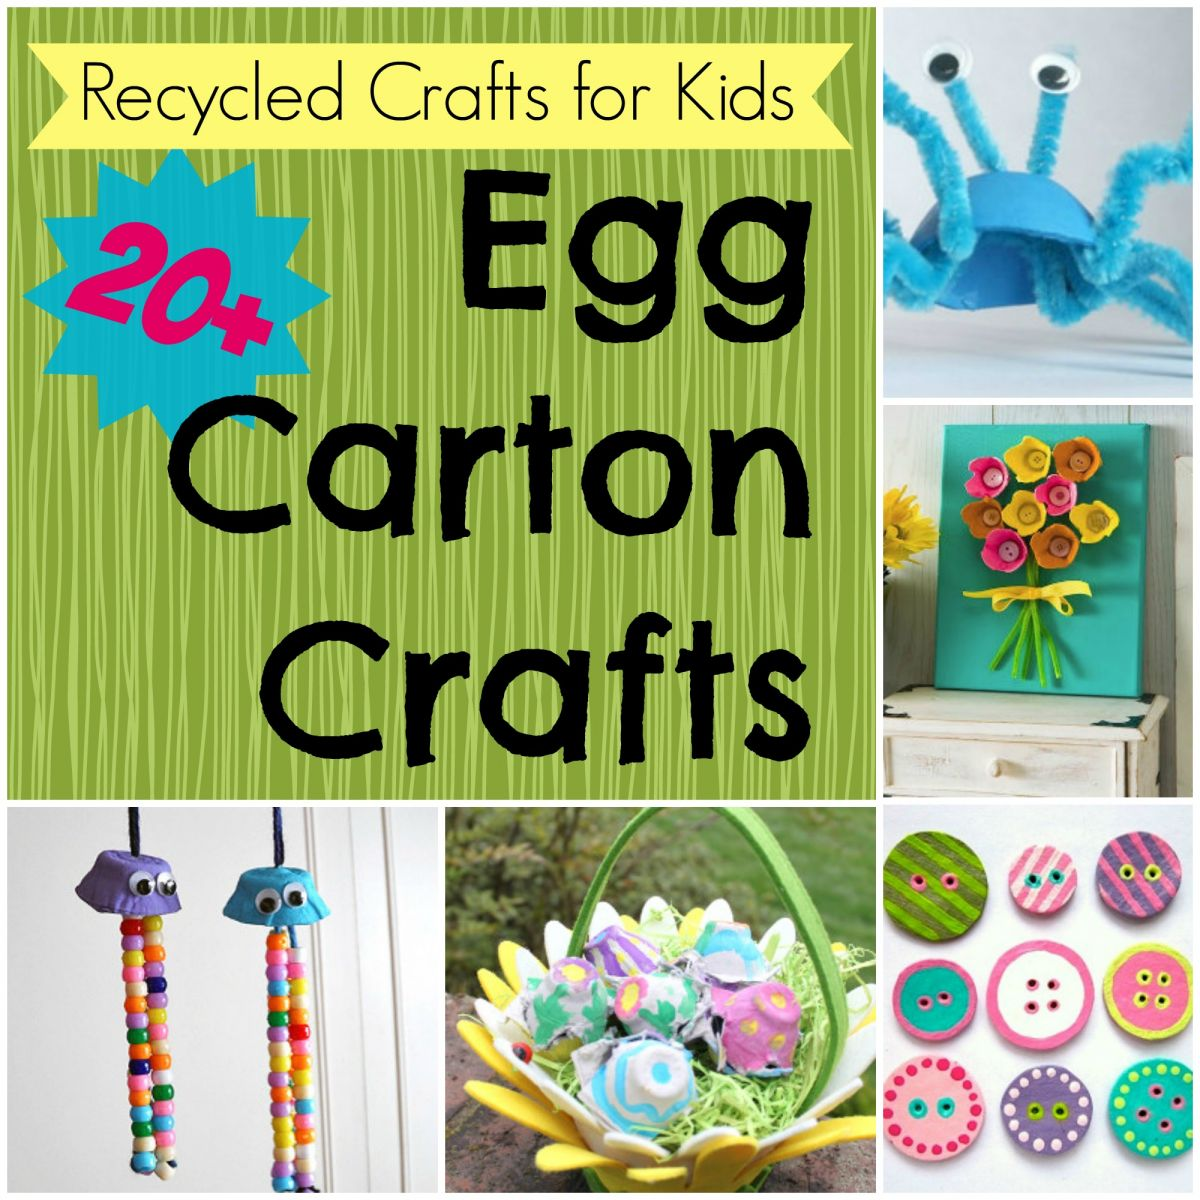 Recycled crafts for kids 33 carton crafts for Recycling ideas for kids